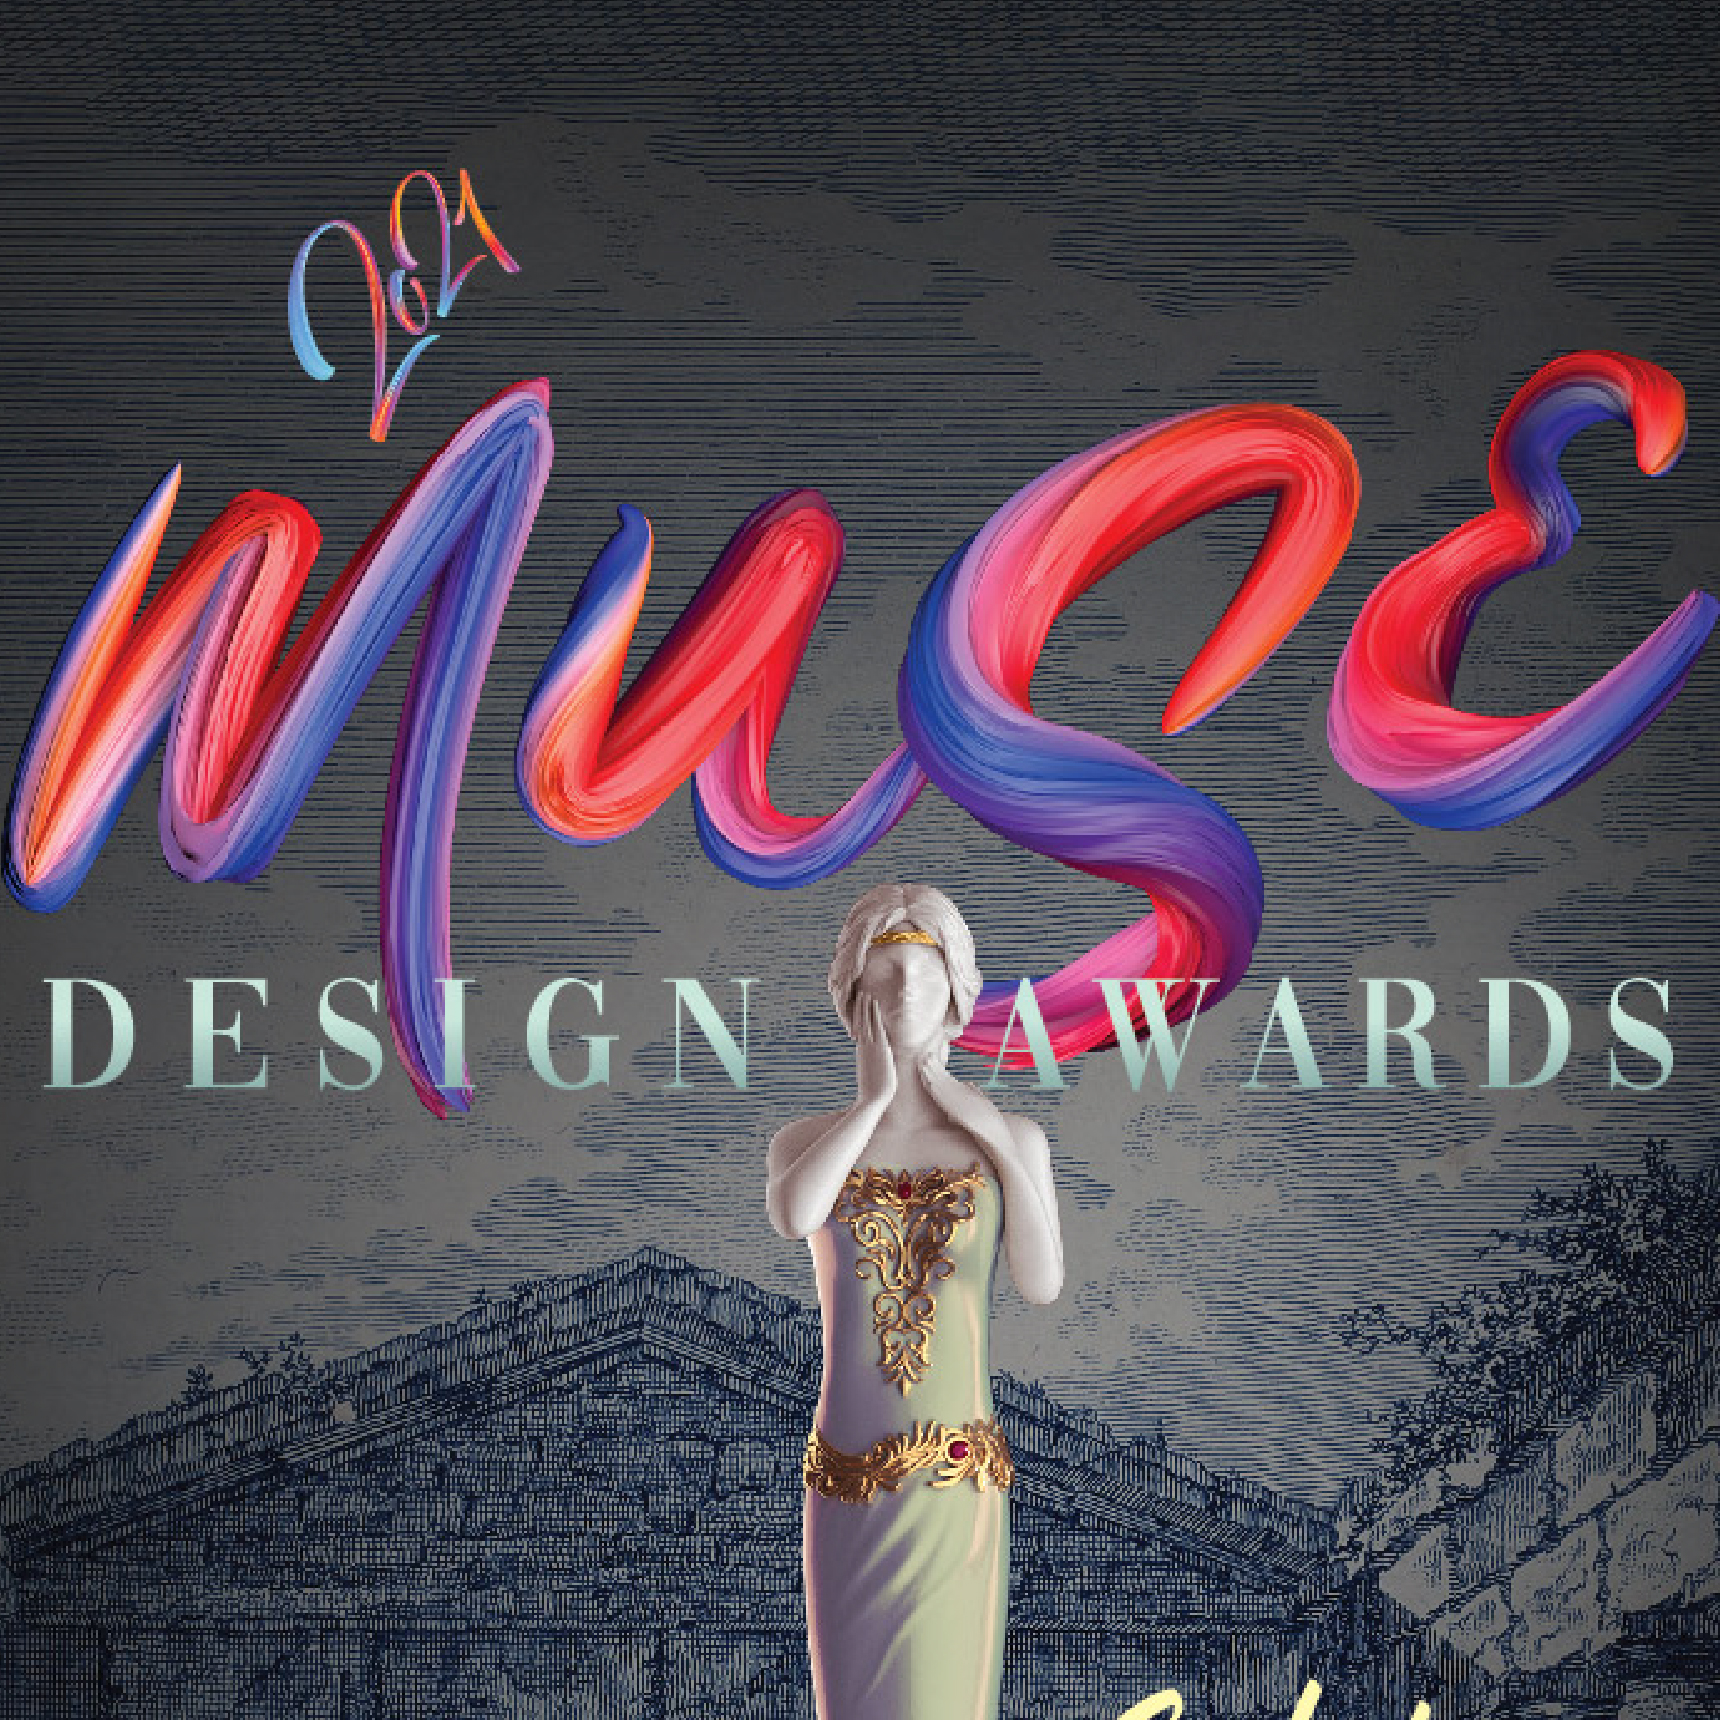 MUSE Design Awards | 2021 Call for Entries